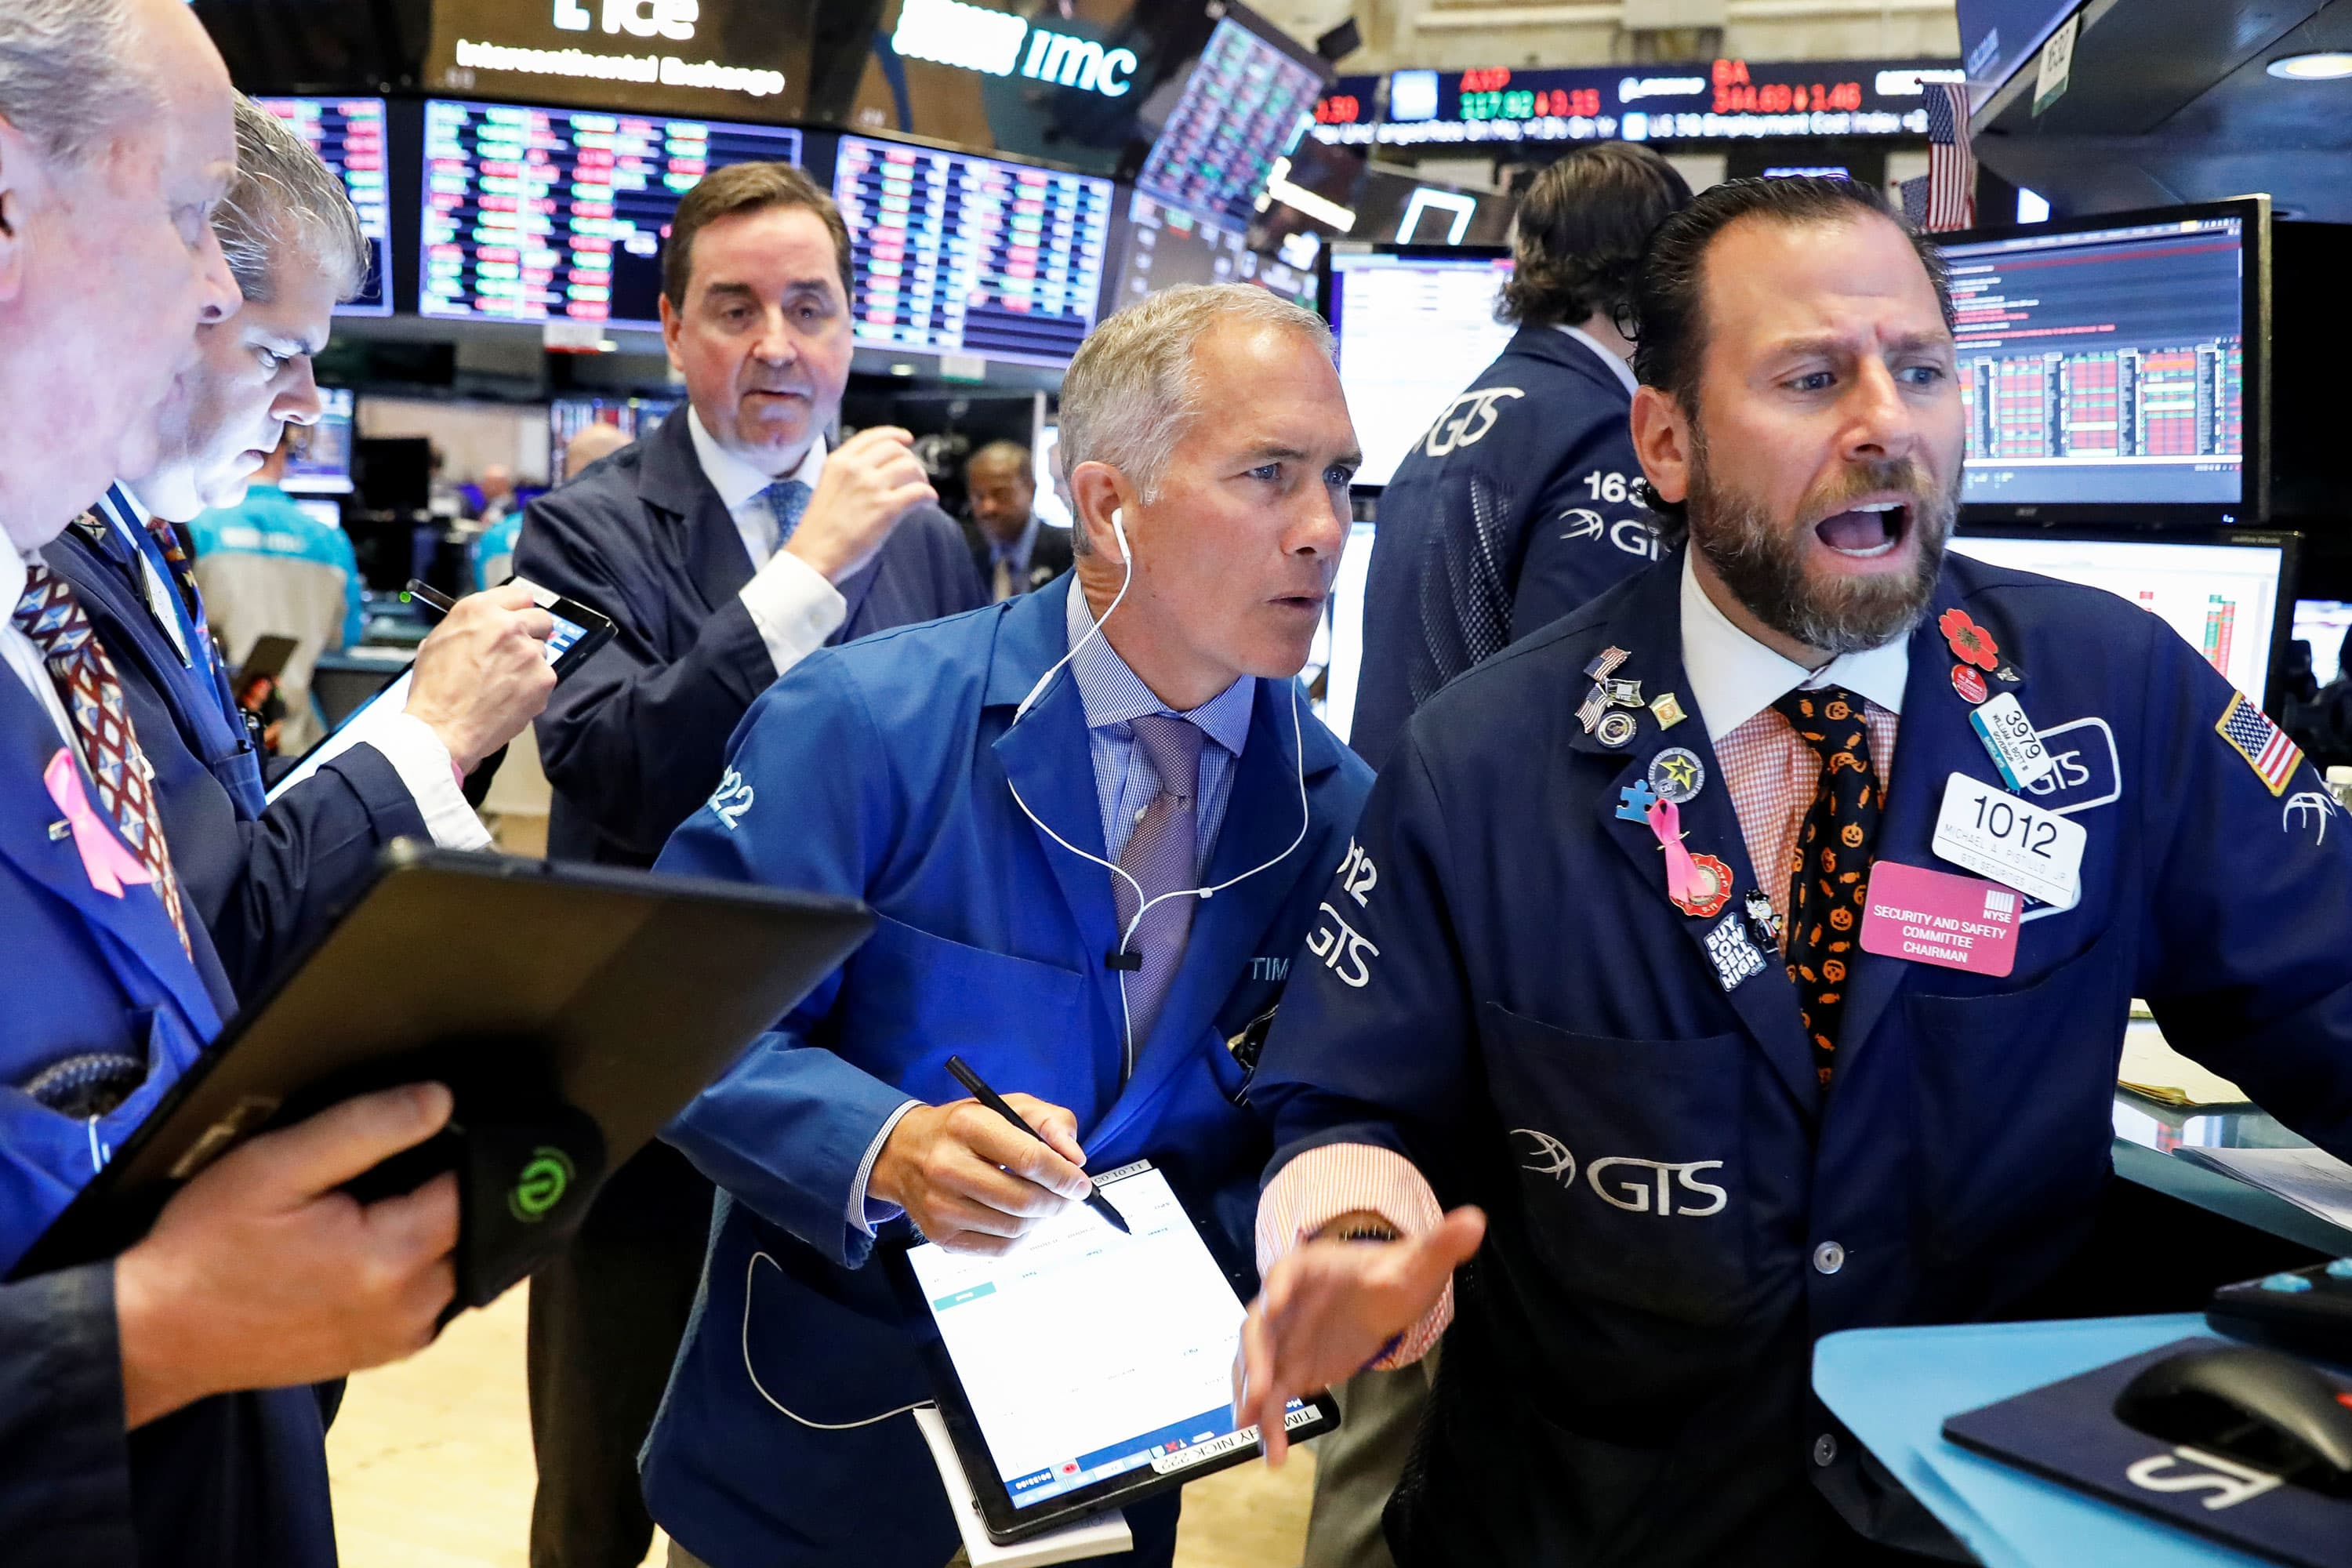 Stocks could go higher, but they may take a breather first, strategists say